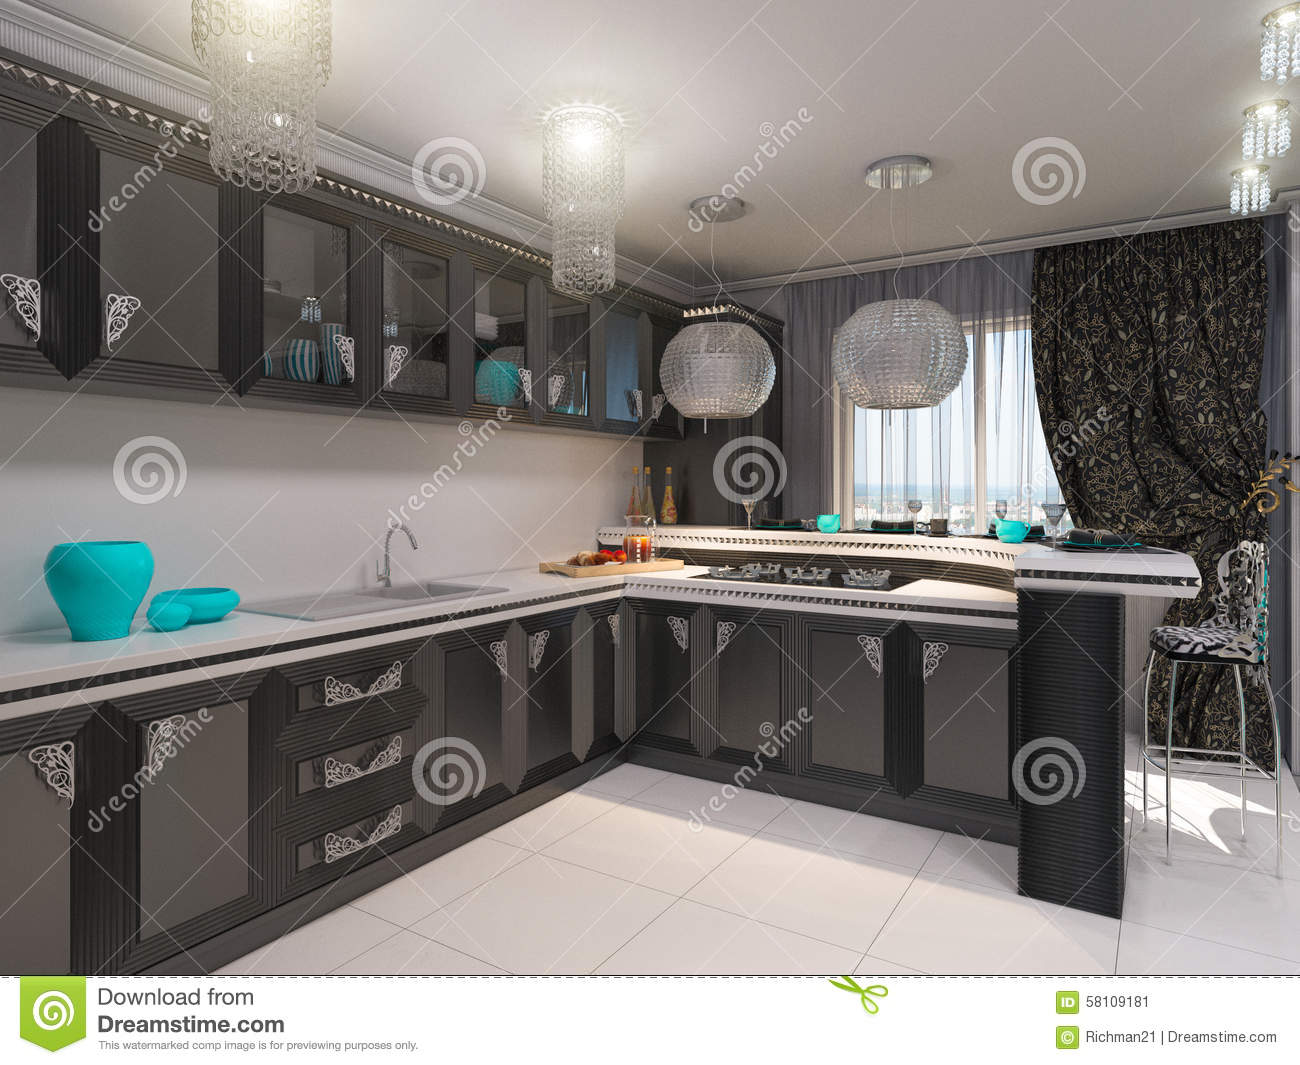 Art Deco Stijl : D illustration of kitchen in style of an art deco stock